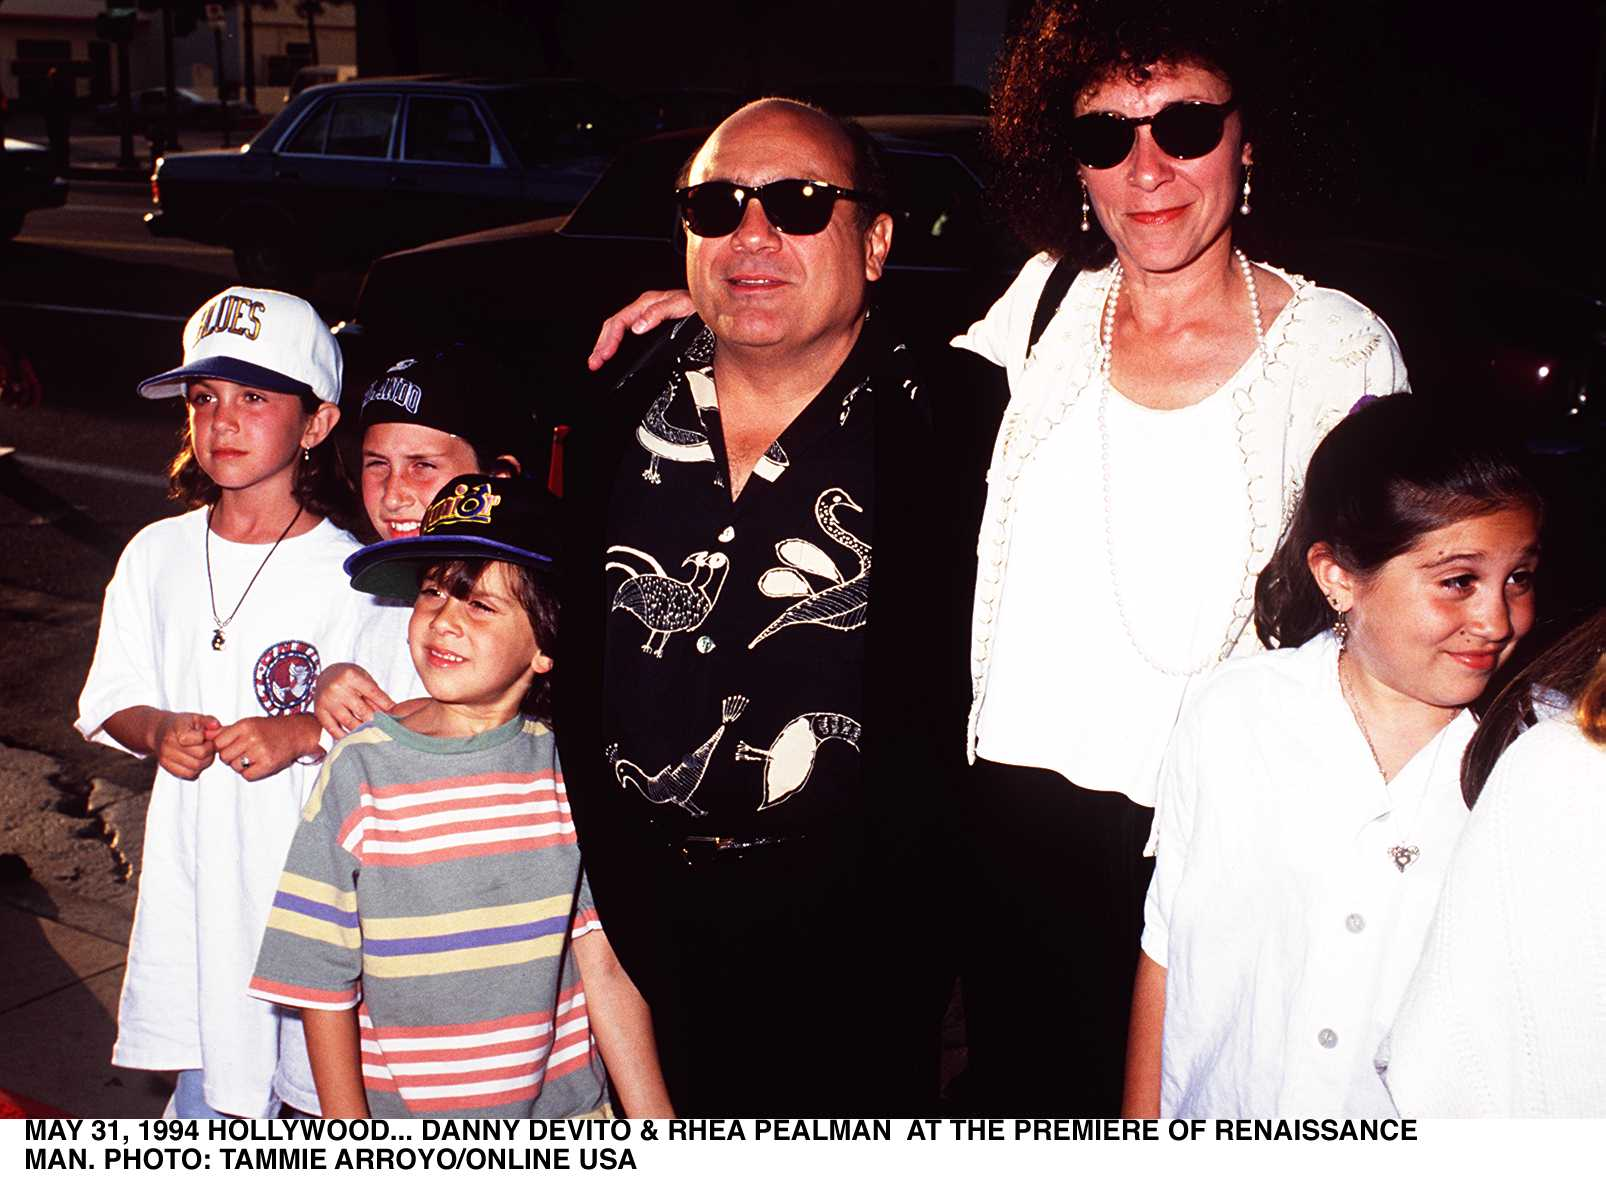 Danny Devito, wife Rhea Pearlman And Children At A Film Premiere | Source: Getty Images